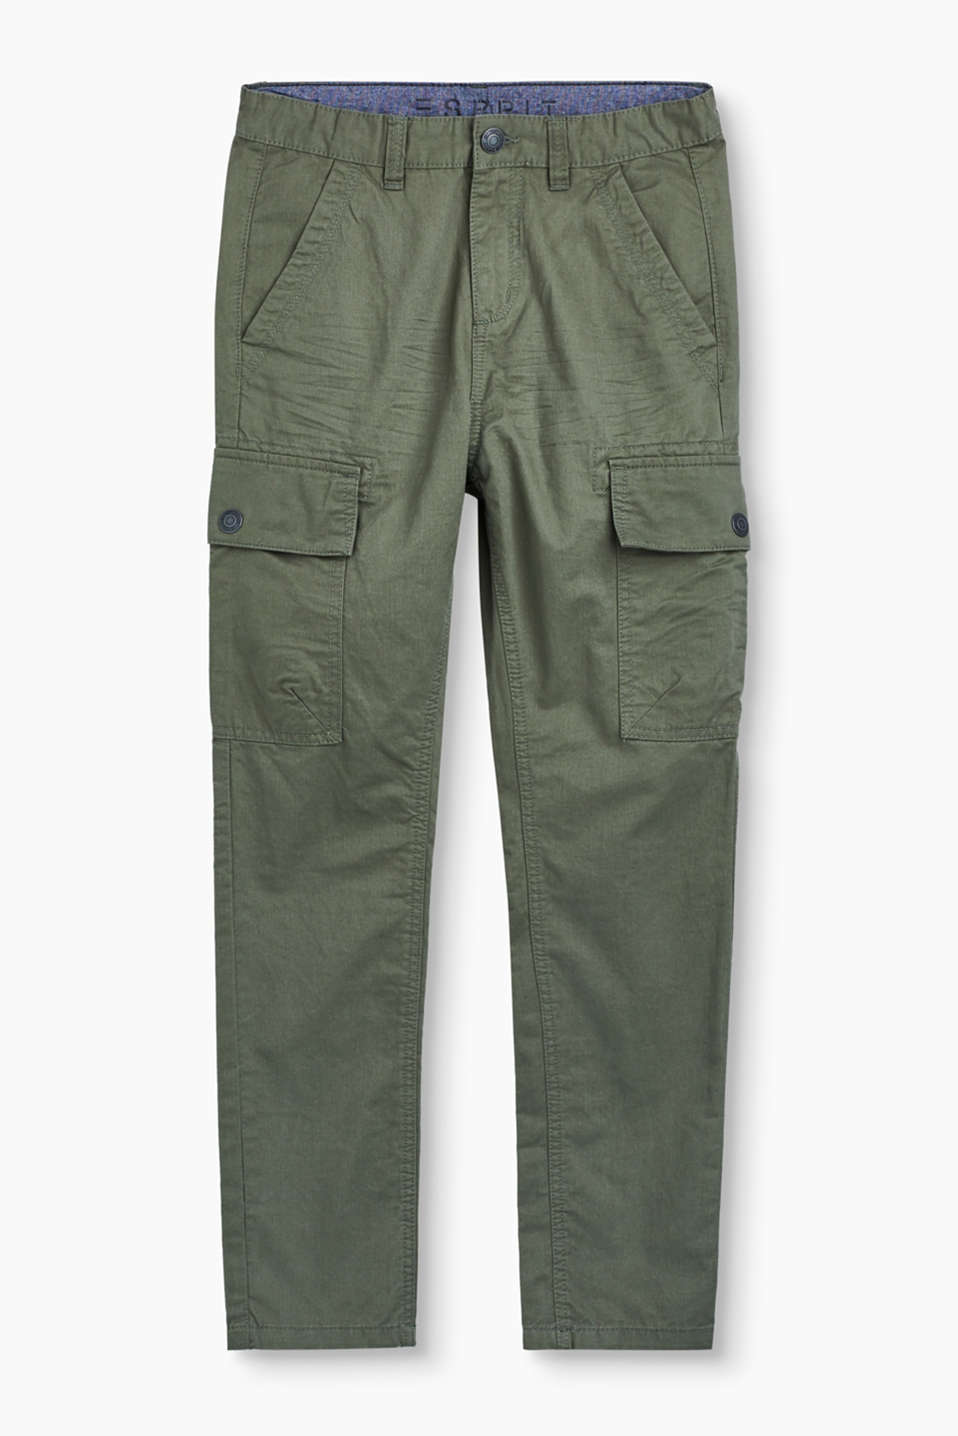 Casual, cool and so comfortable: these soft cotton cargo trousers are a true style highlight.